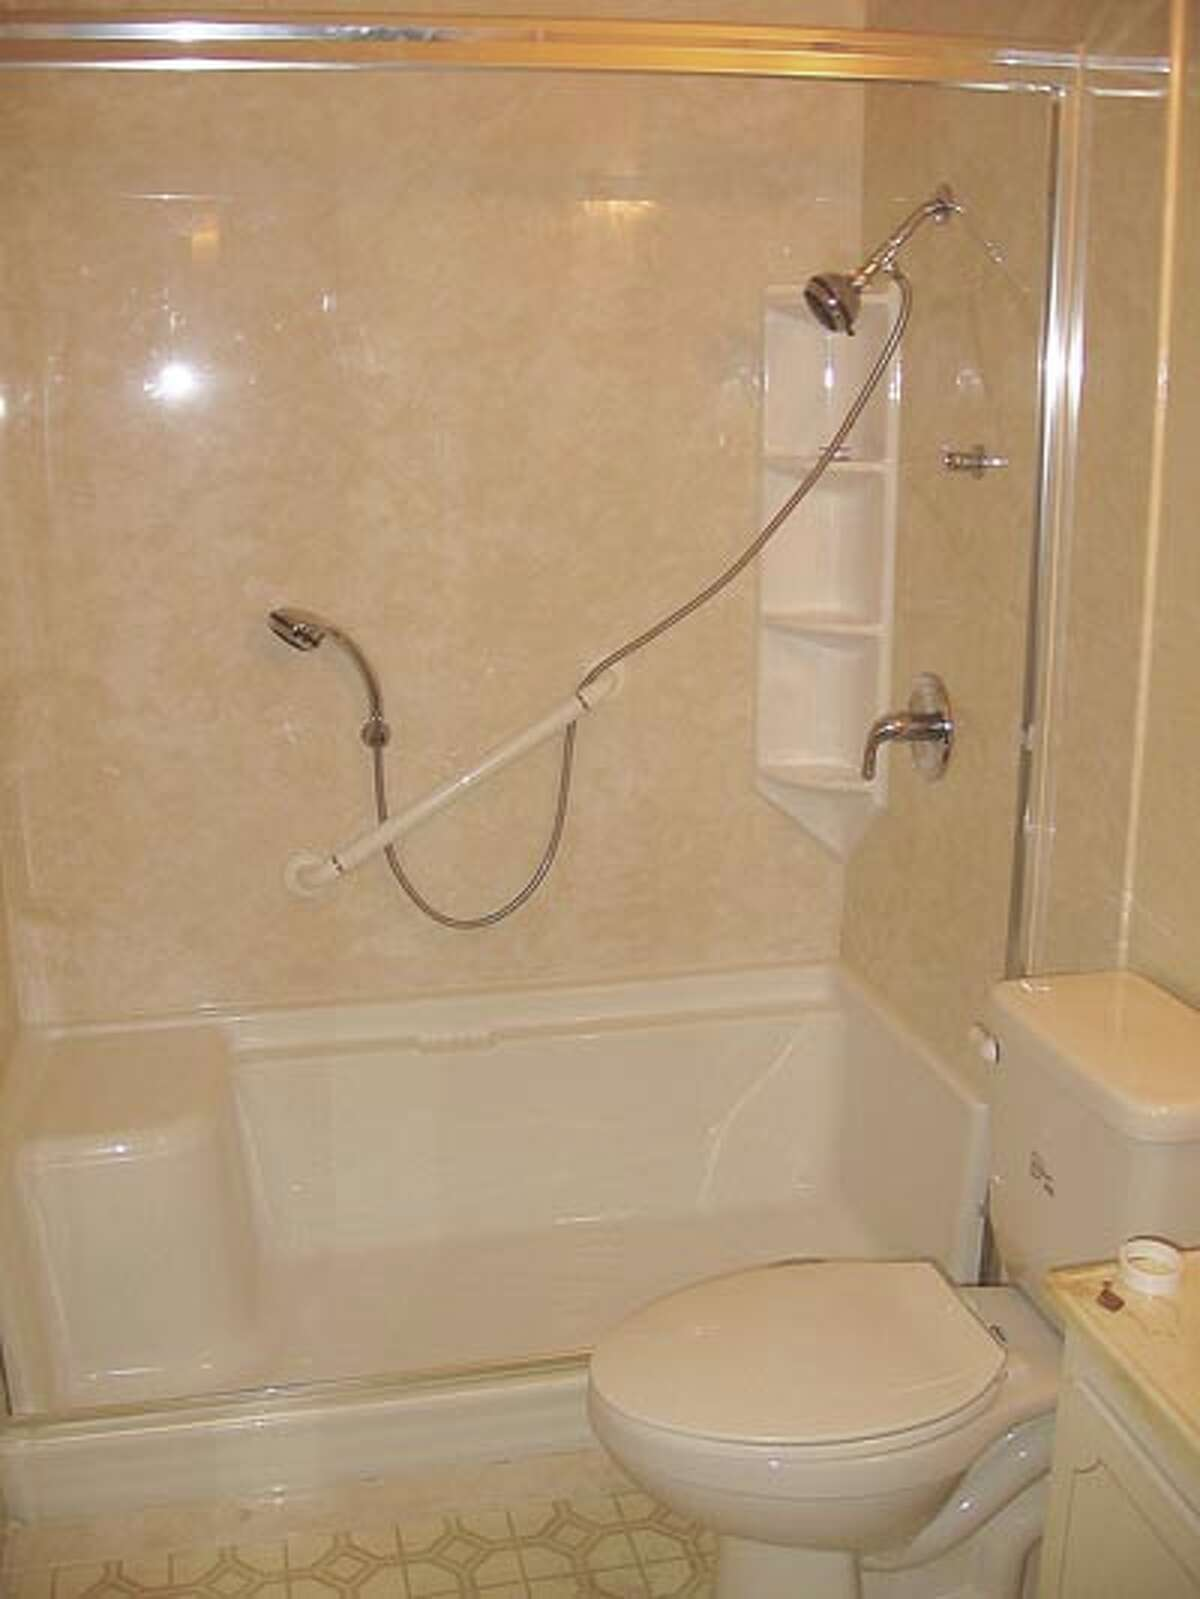 Luxury Bath's Clayton Oldham is so sold on his bath remodels he did a tub-to-shower conversion at his own grandmother's home (pictured). For a free estimate, call 218-6448.